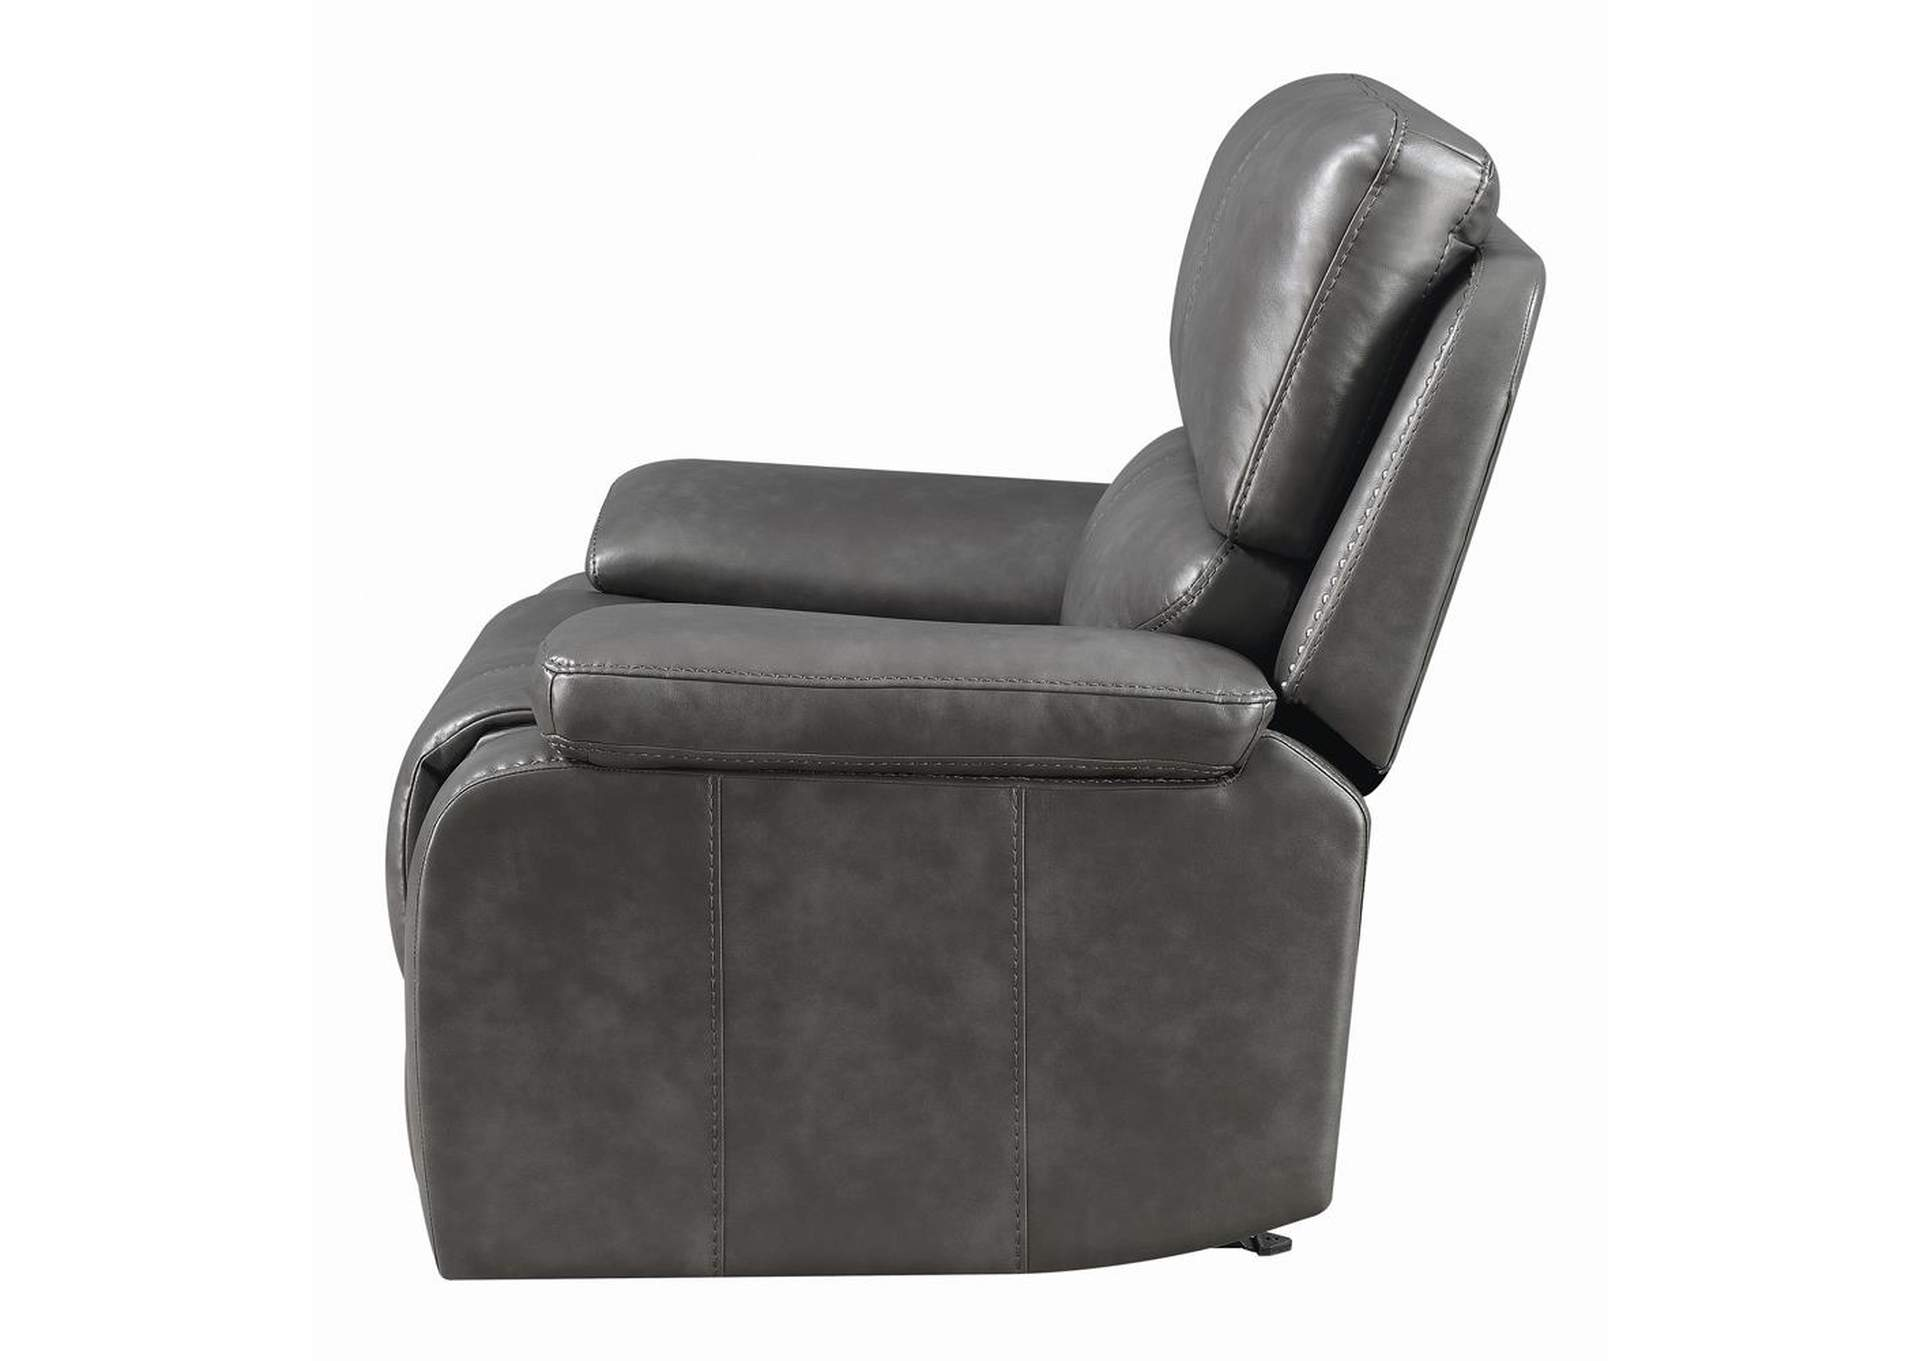 Ravenna Charcoal Power Glider Recliner,Coaster Furniture